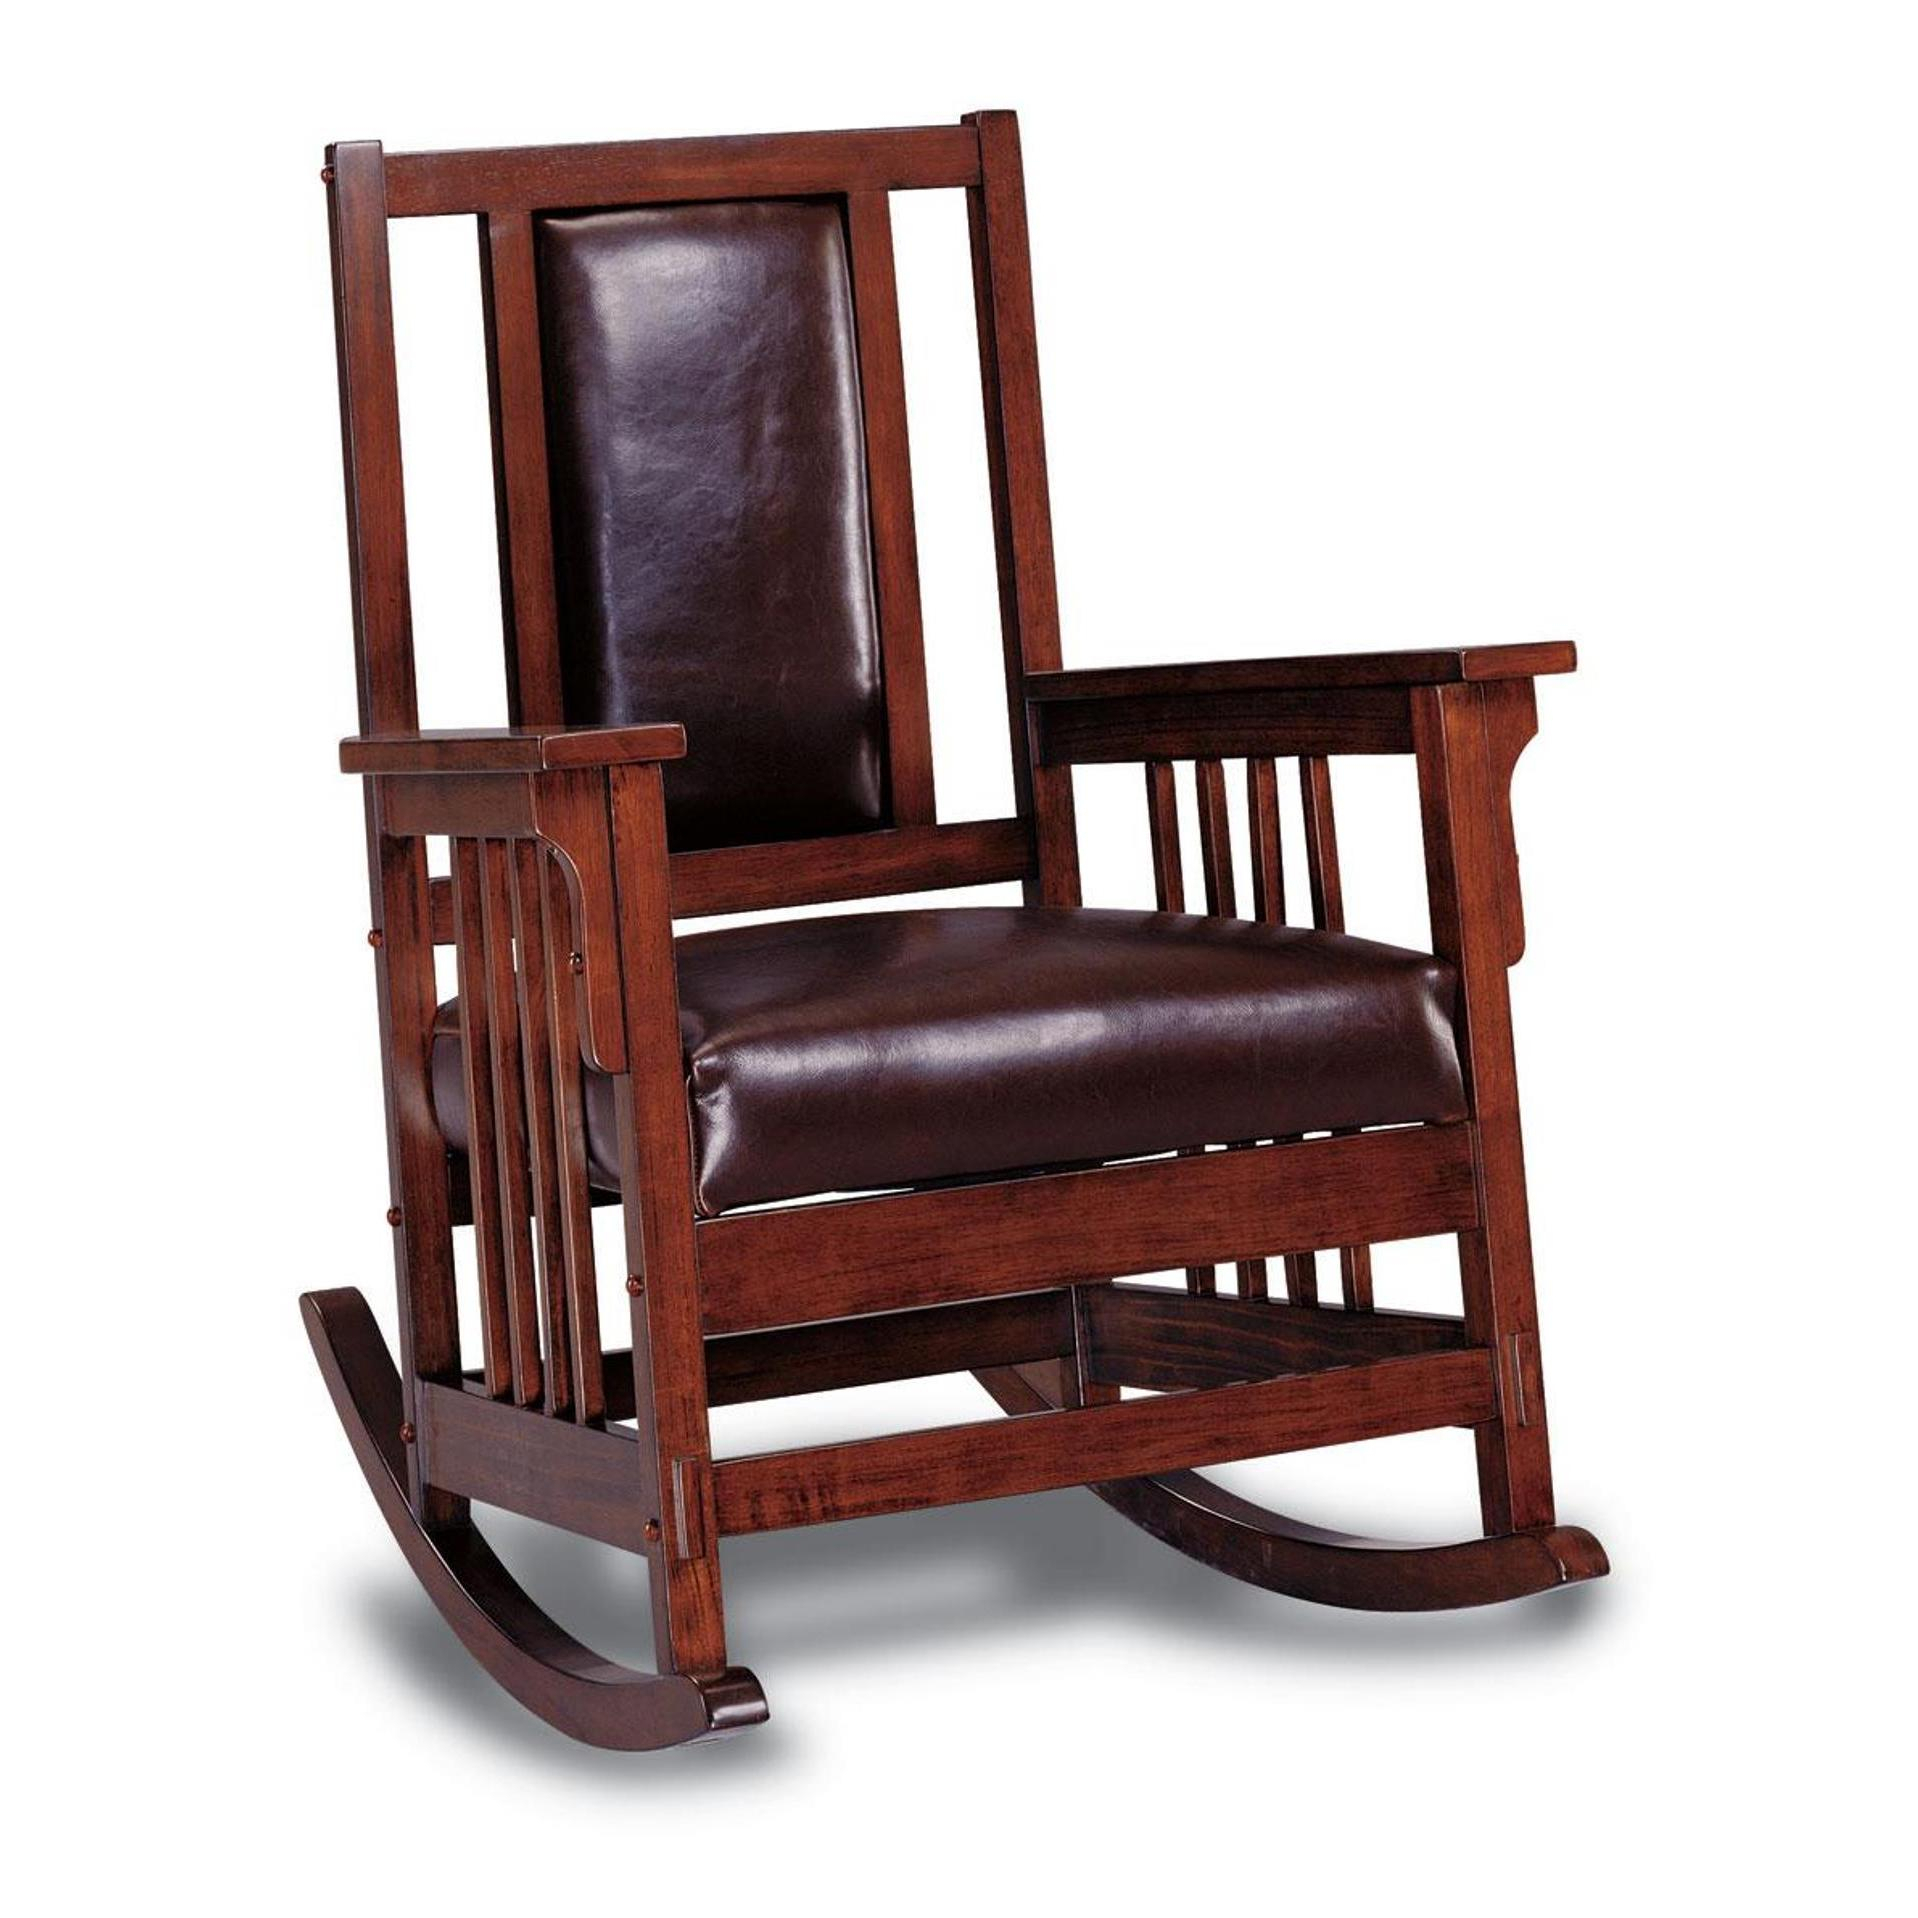 Kapelner Luxury Mission Style Rocking Chair Pertaining To Poppy Mission Espresso Rocking Chairs (#6 of 20)